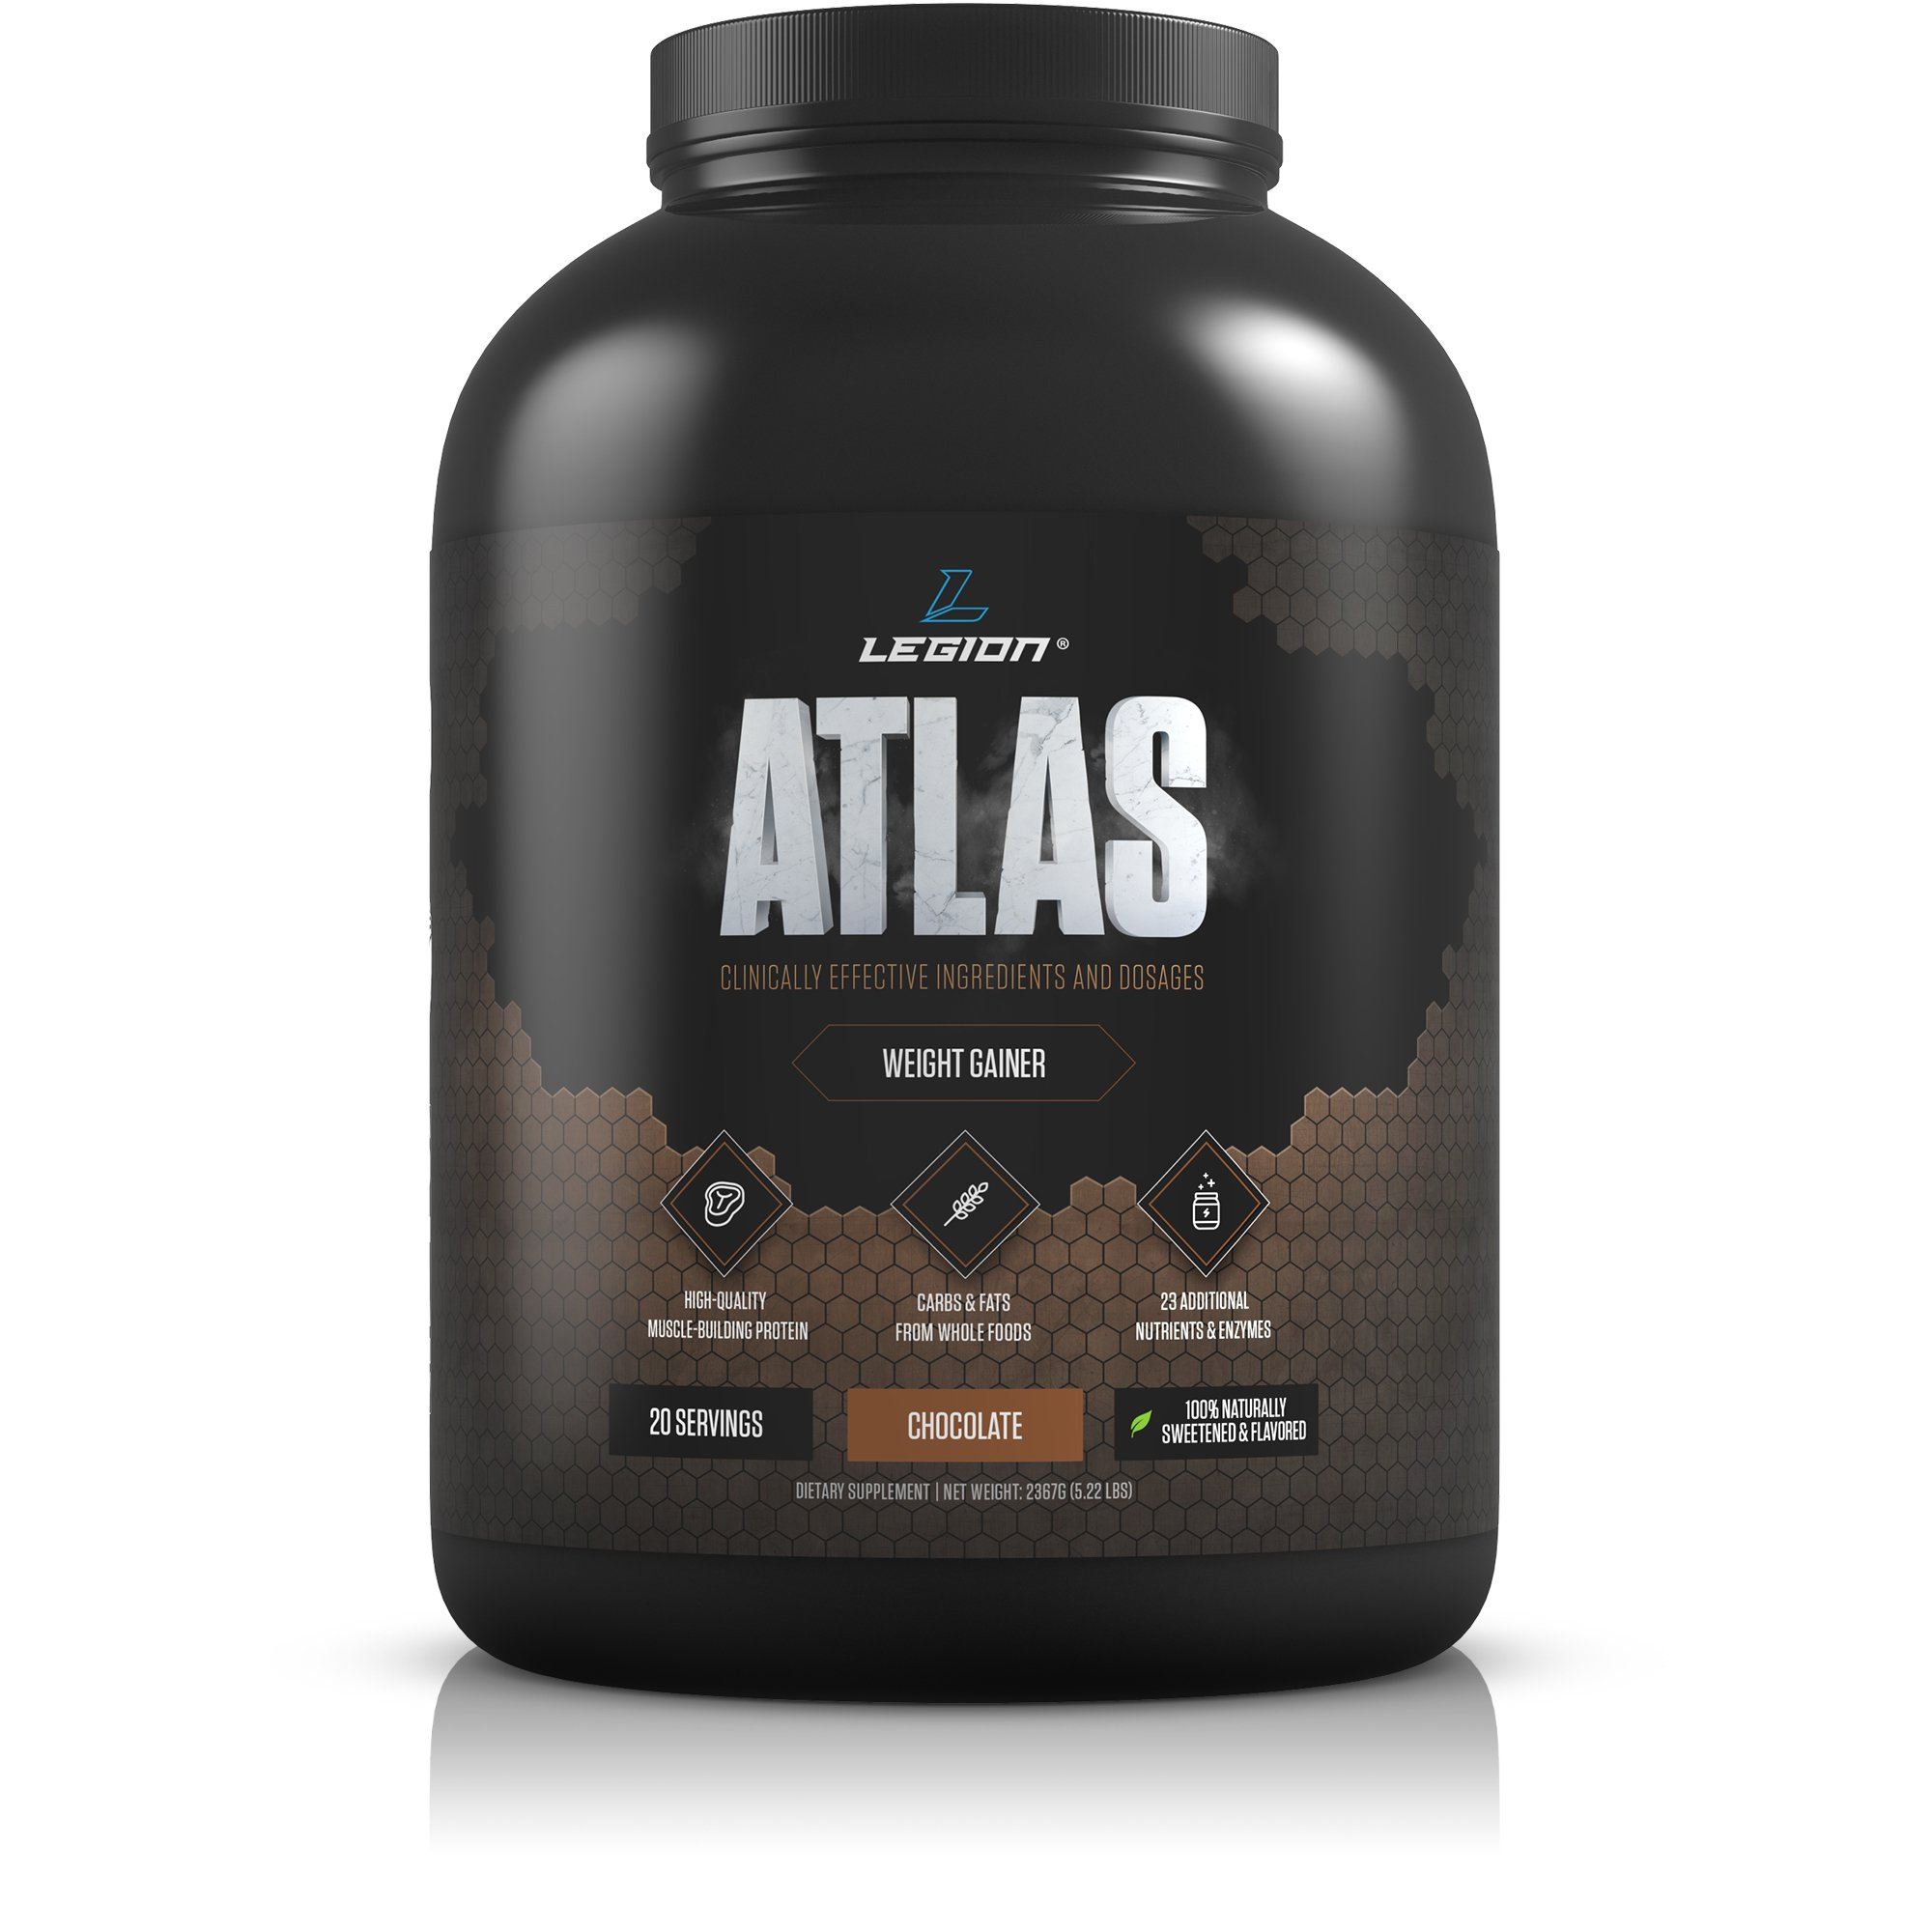 Legion Atlas Weight Gainer Supplement - Healthy Meal Replacement Shake with Grass Fed Whey Protein Isolate & Micellar Casein, Naturally Sweetened & Flavored, Chocolate, 5.22 lbs